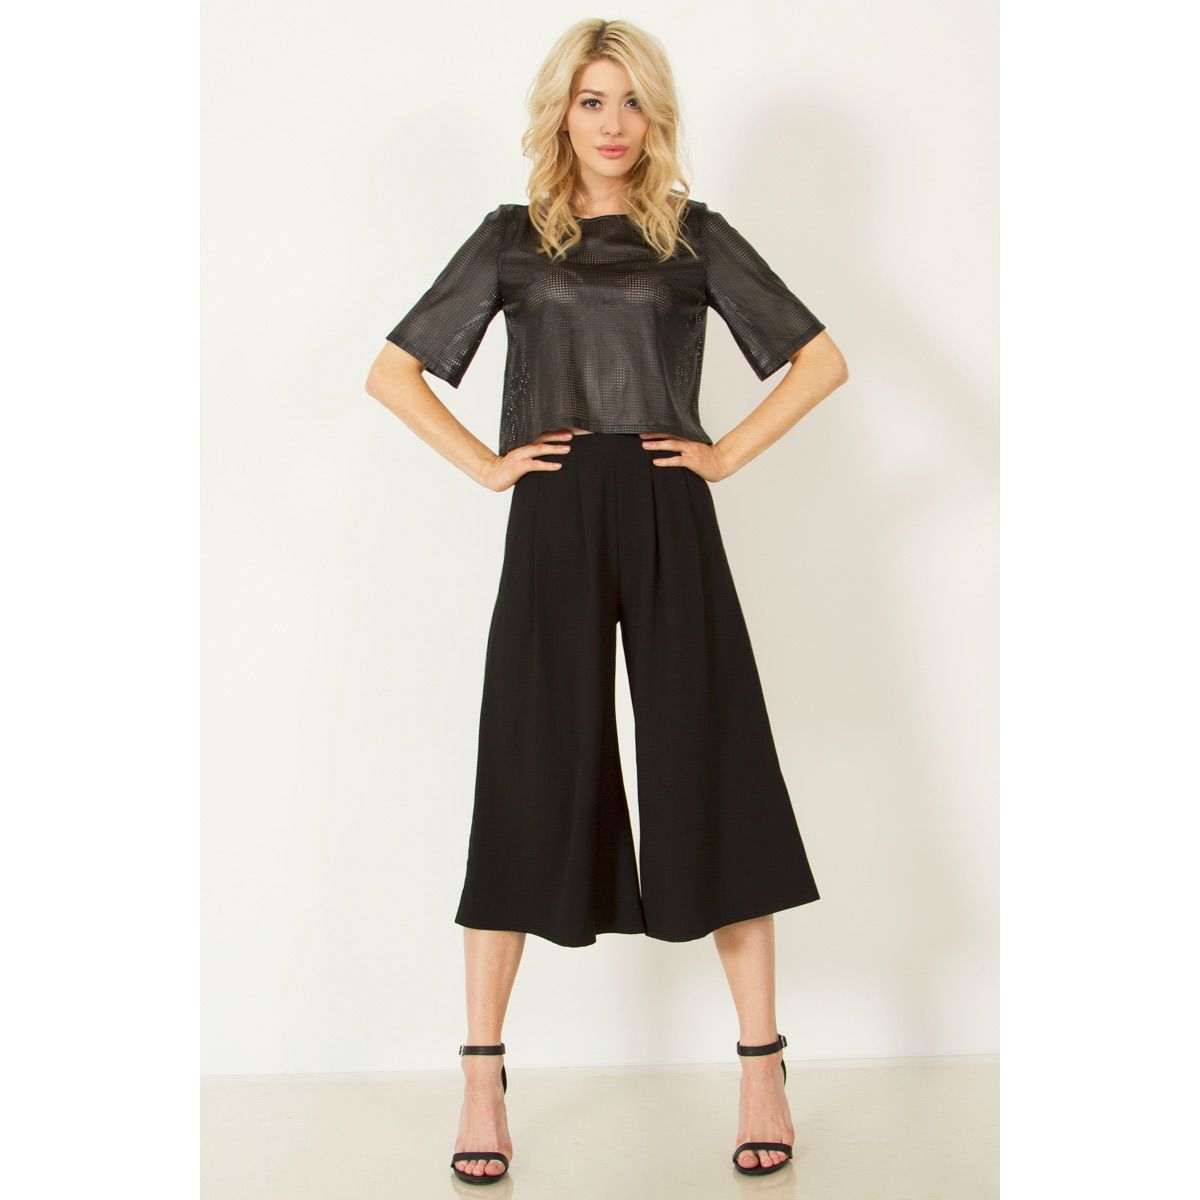 Culottes, culottes, culottes!!! MUST HAVE FOR SUMMER! Who's swinging by to borrow these pants now? Culottes are the must have item for your closet this season and these will be coveted. These wide-leg black pleated culottes can take you from daytime to evening effortlessly. Everyday Runway Boutique